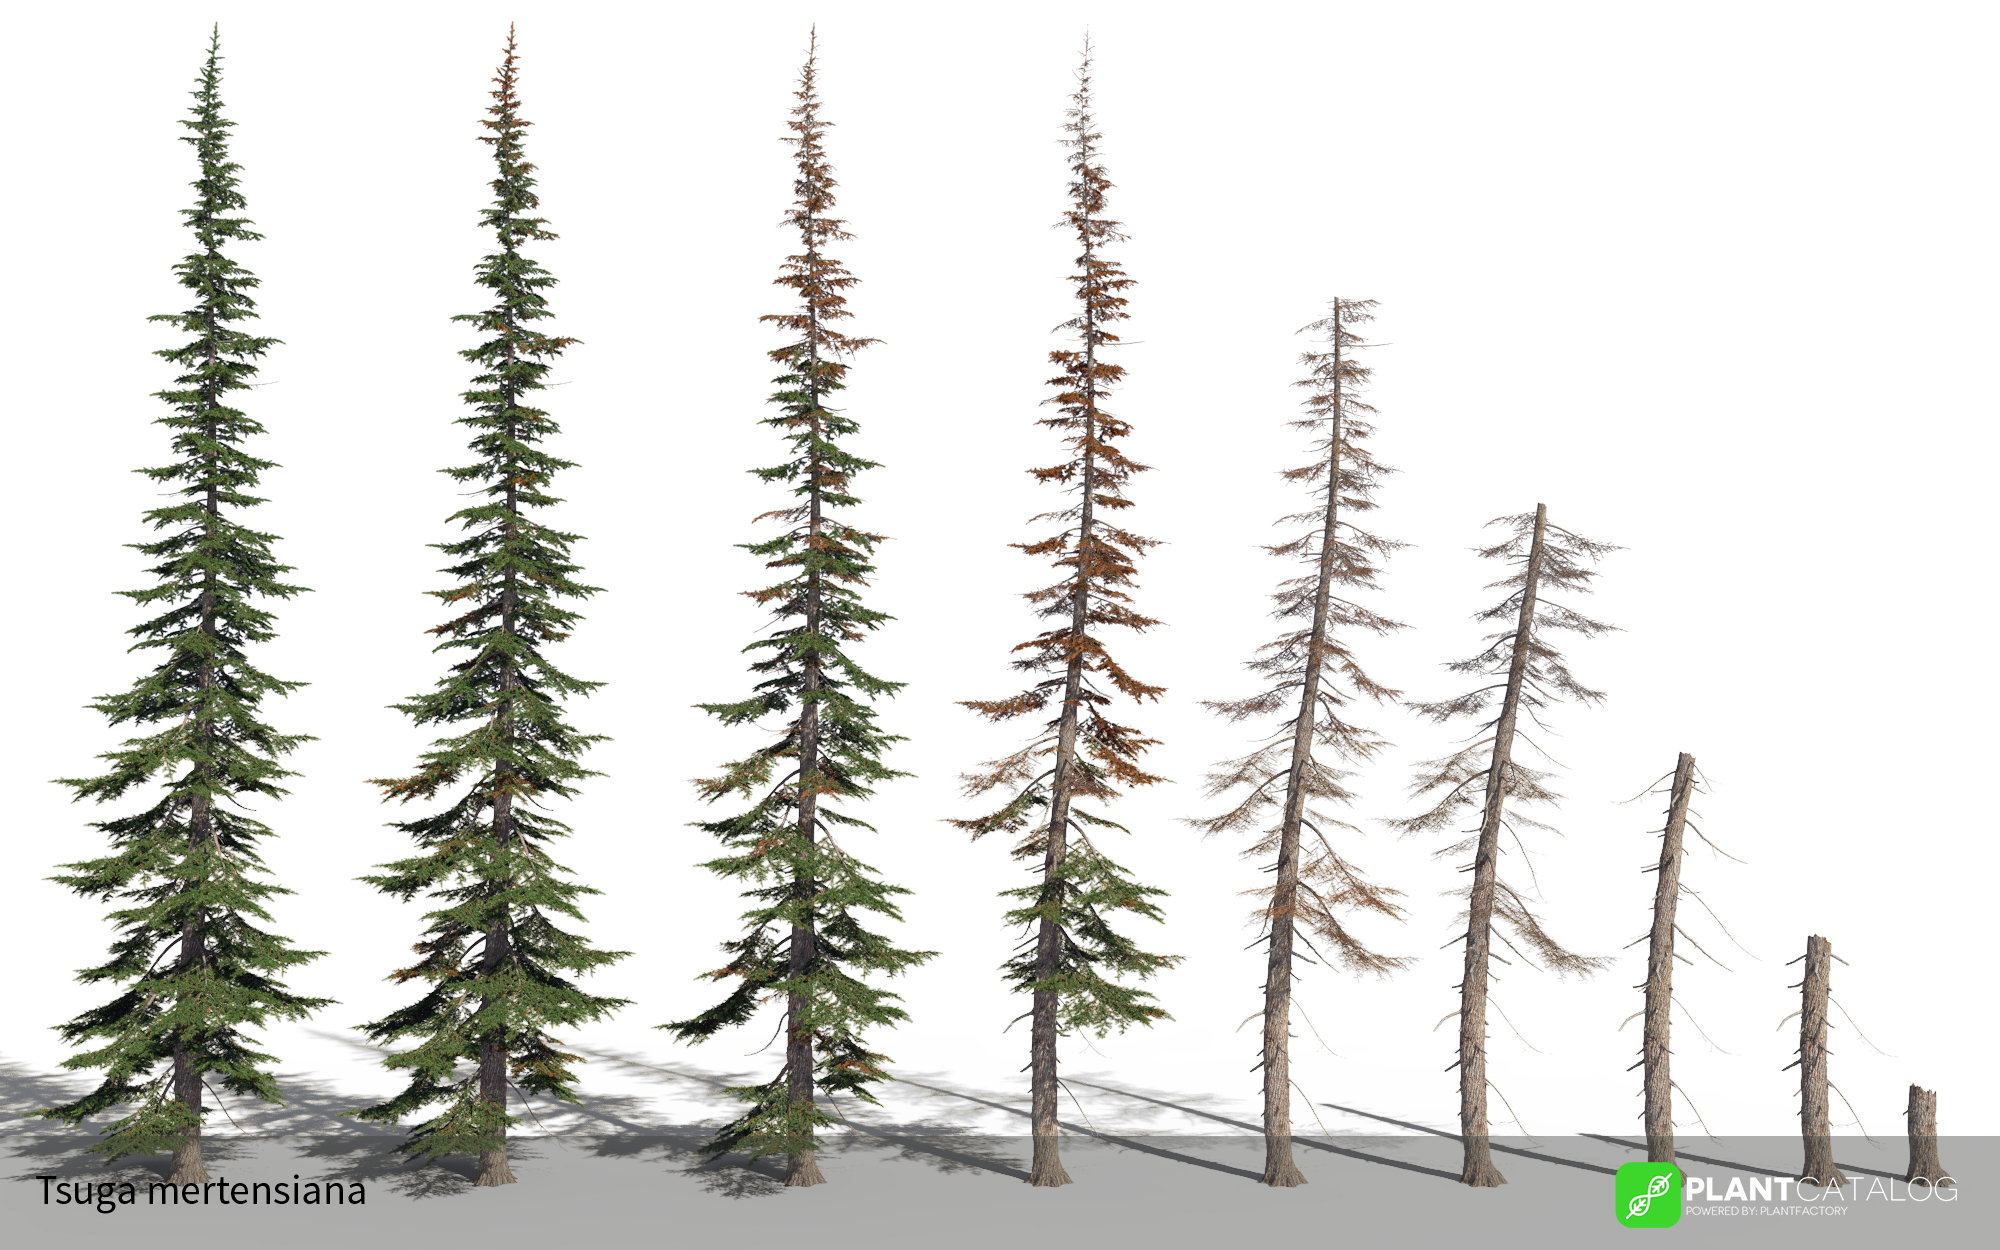 3D model of the Mountain hemlock - Tsuga mertensiana - from the PlantCatalog, rendered in VUE